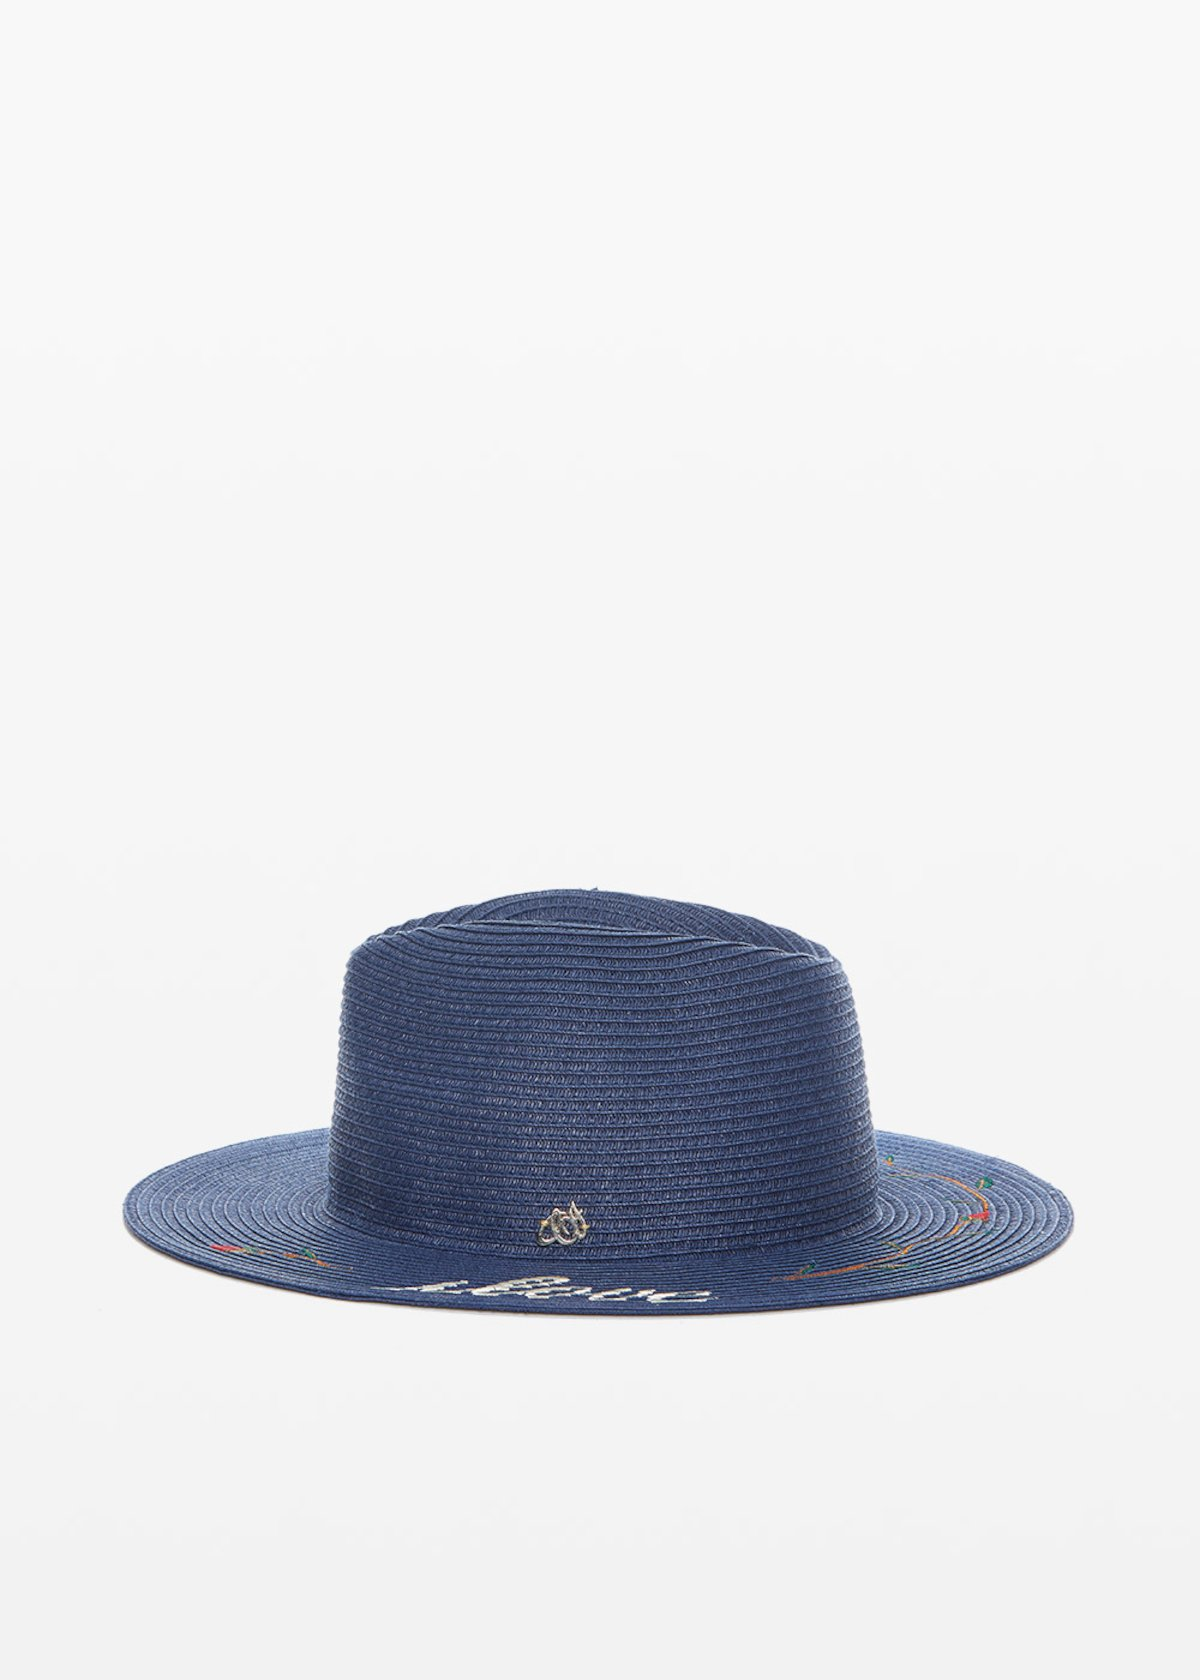 Cordy straw hat with